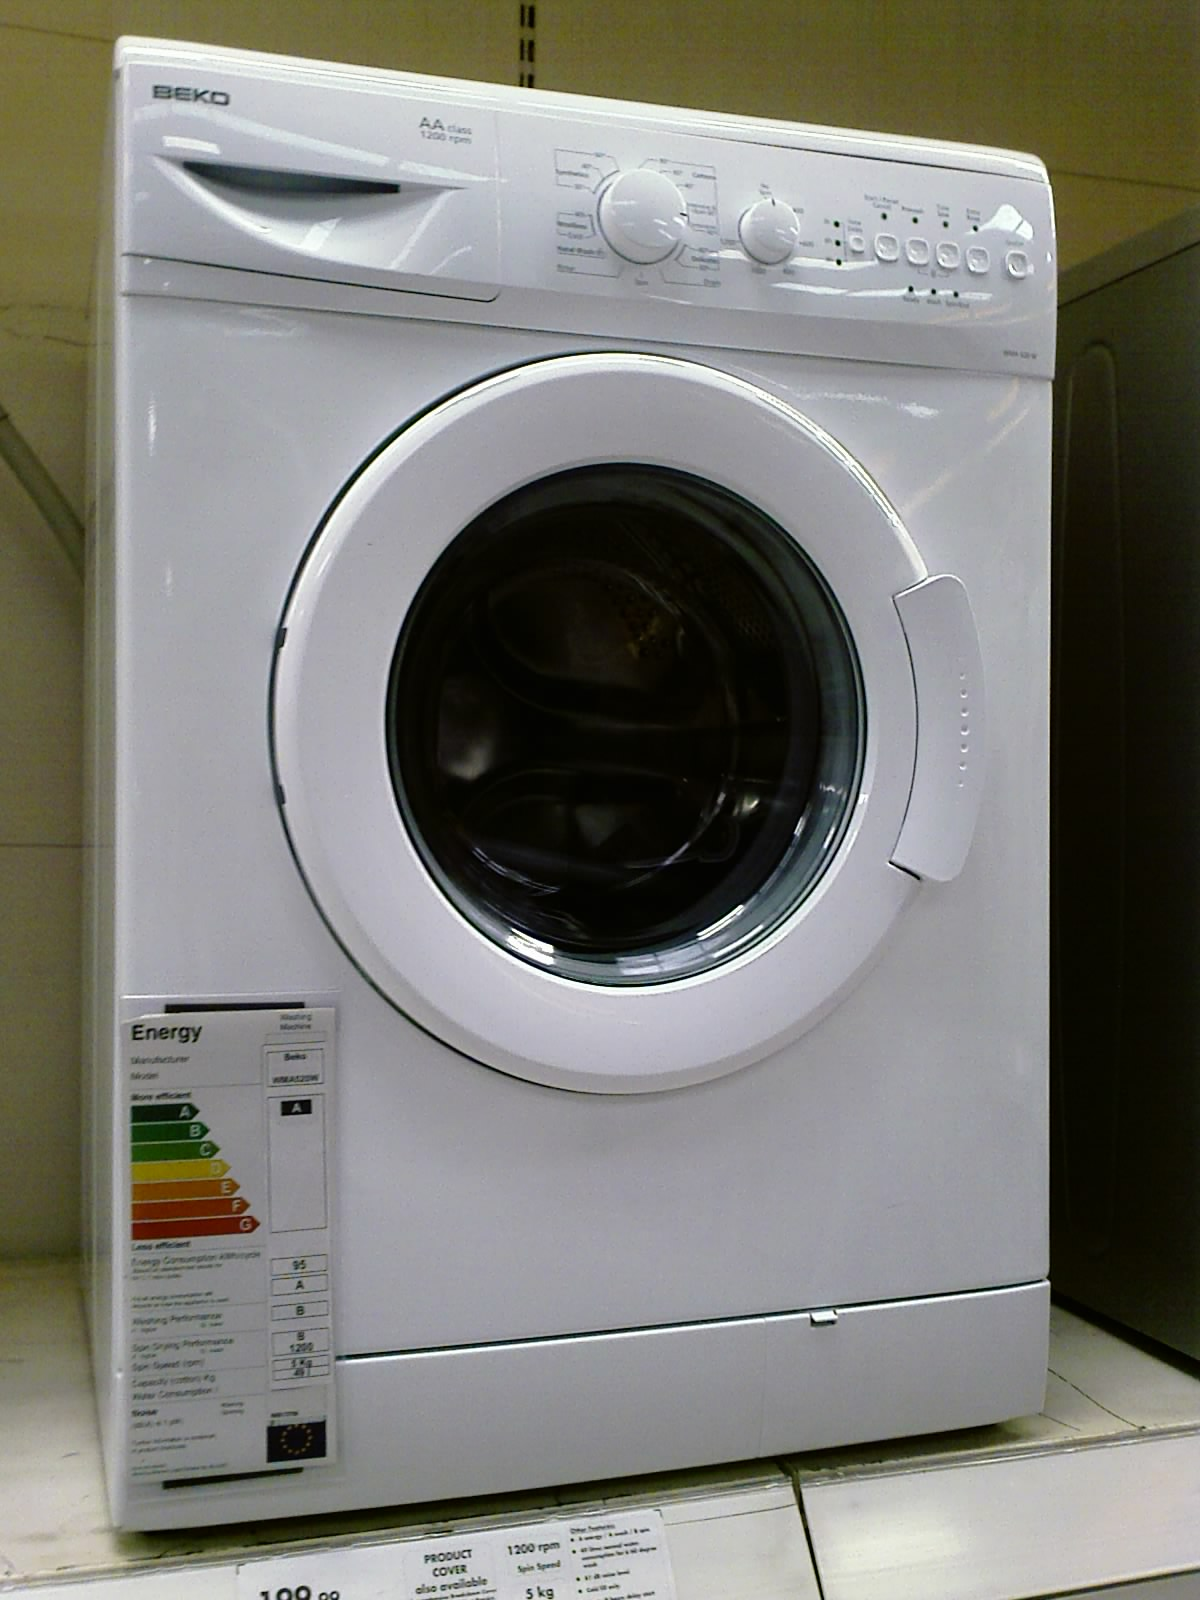 https://commons.wikimedia.org/wiki/File:Washing_Machine_Beko.jpg